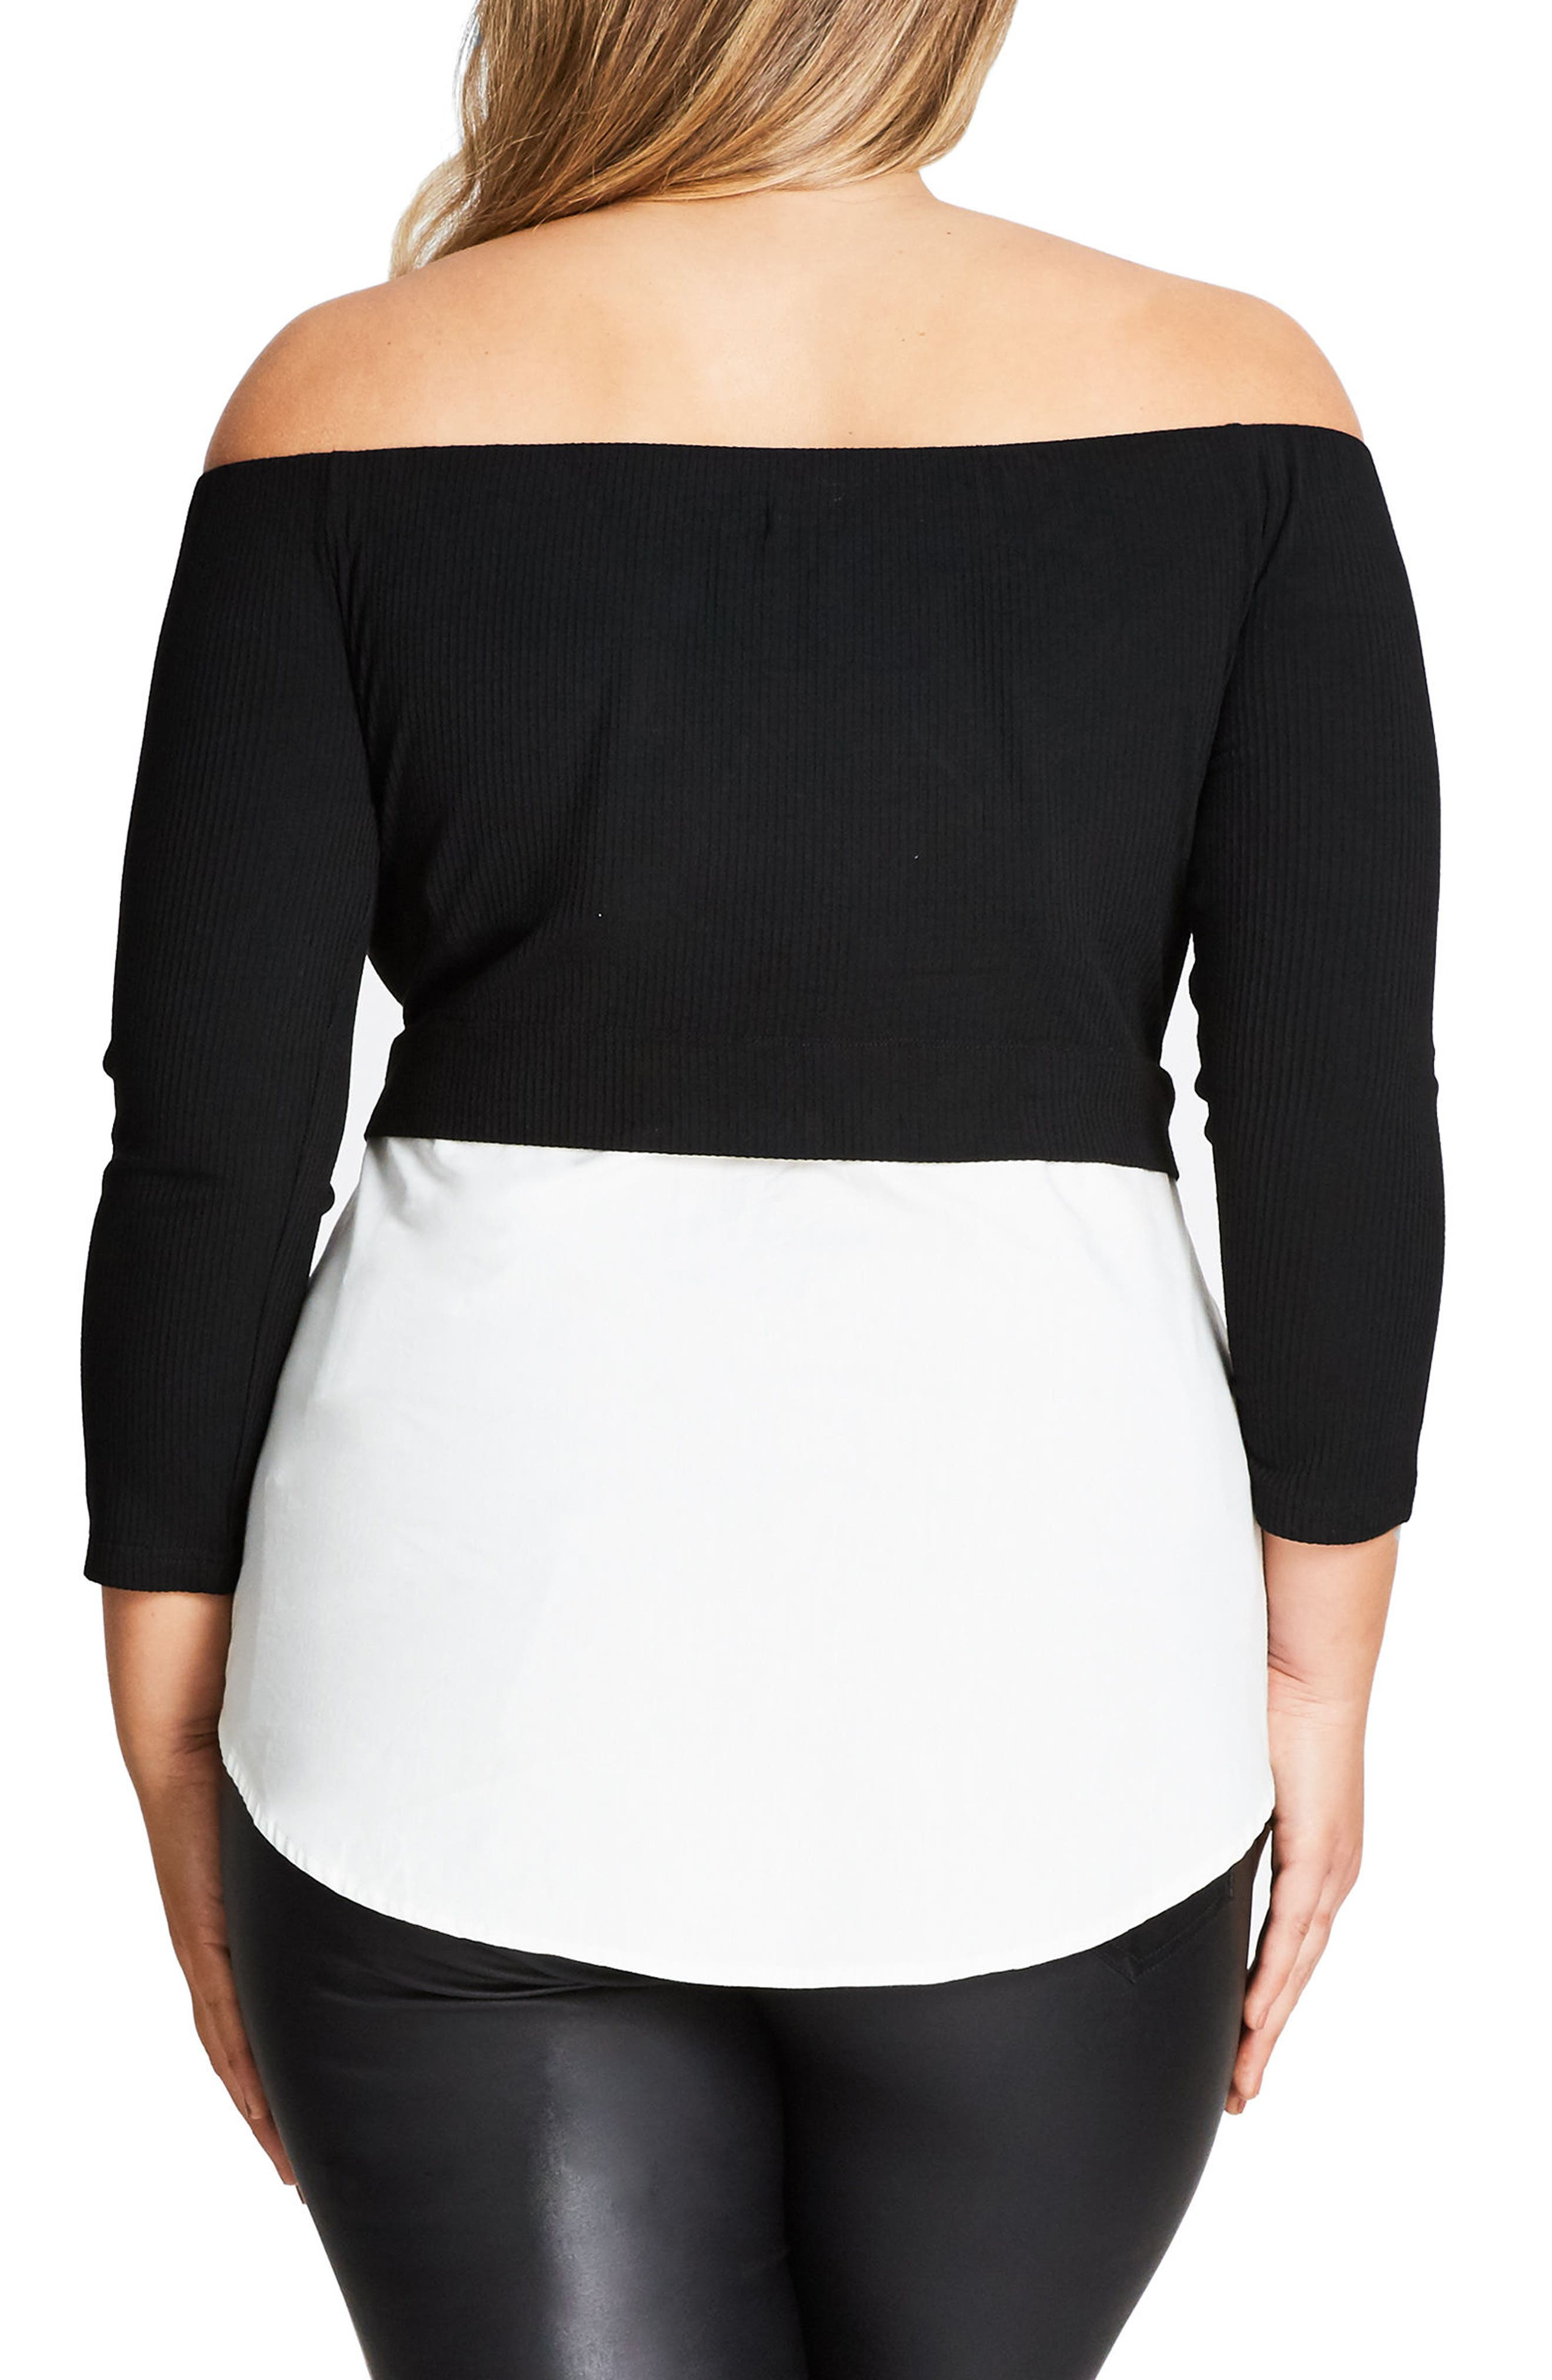 Alternate Image 2  - City Chic Layer Look Off the Shoulder Top (Plus Size)